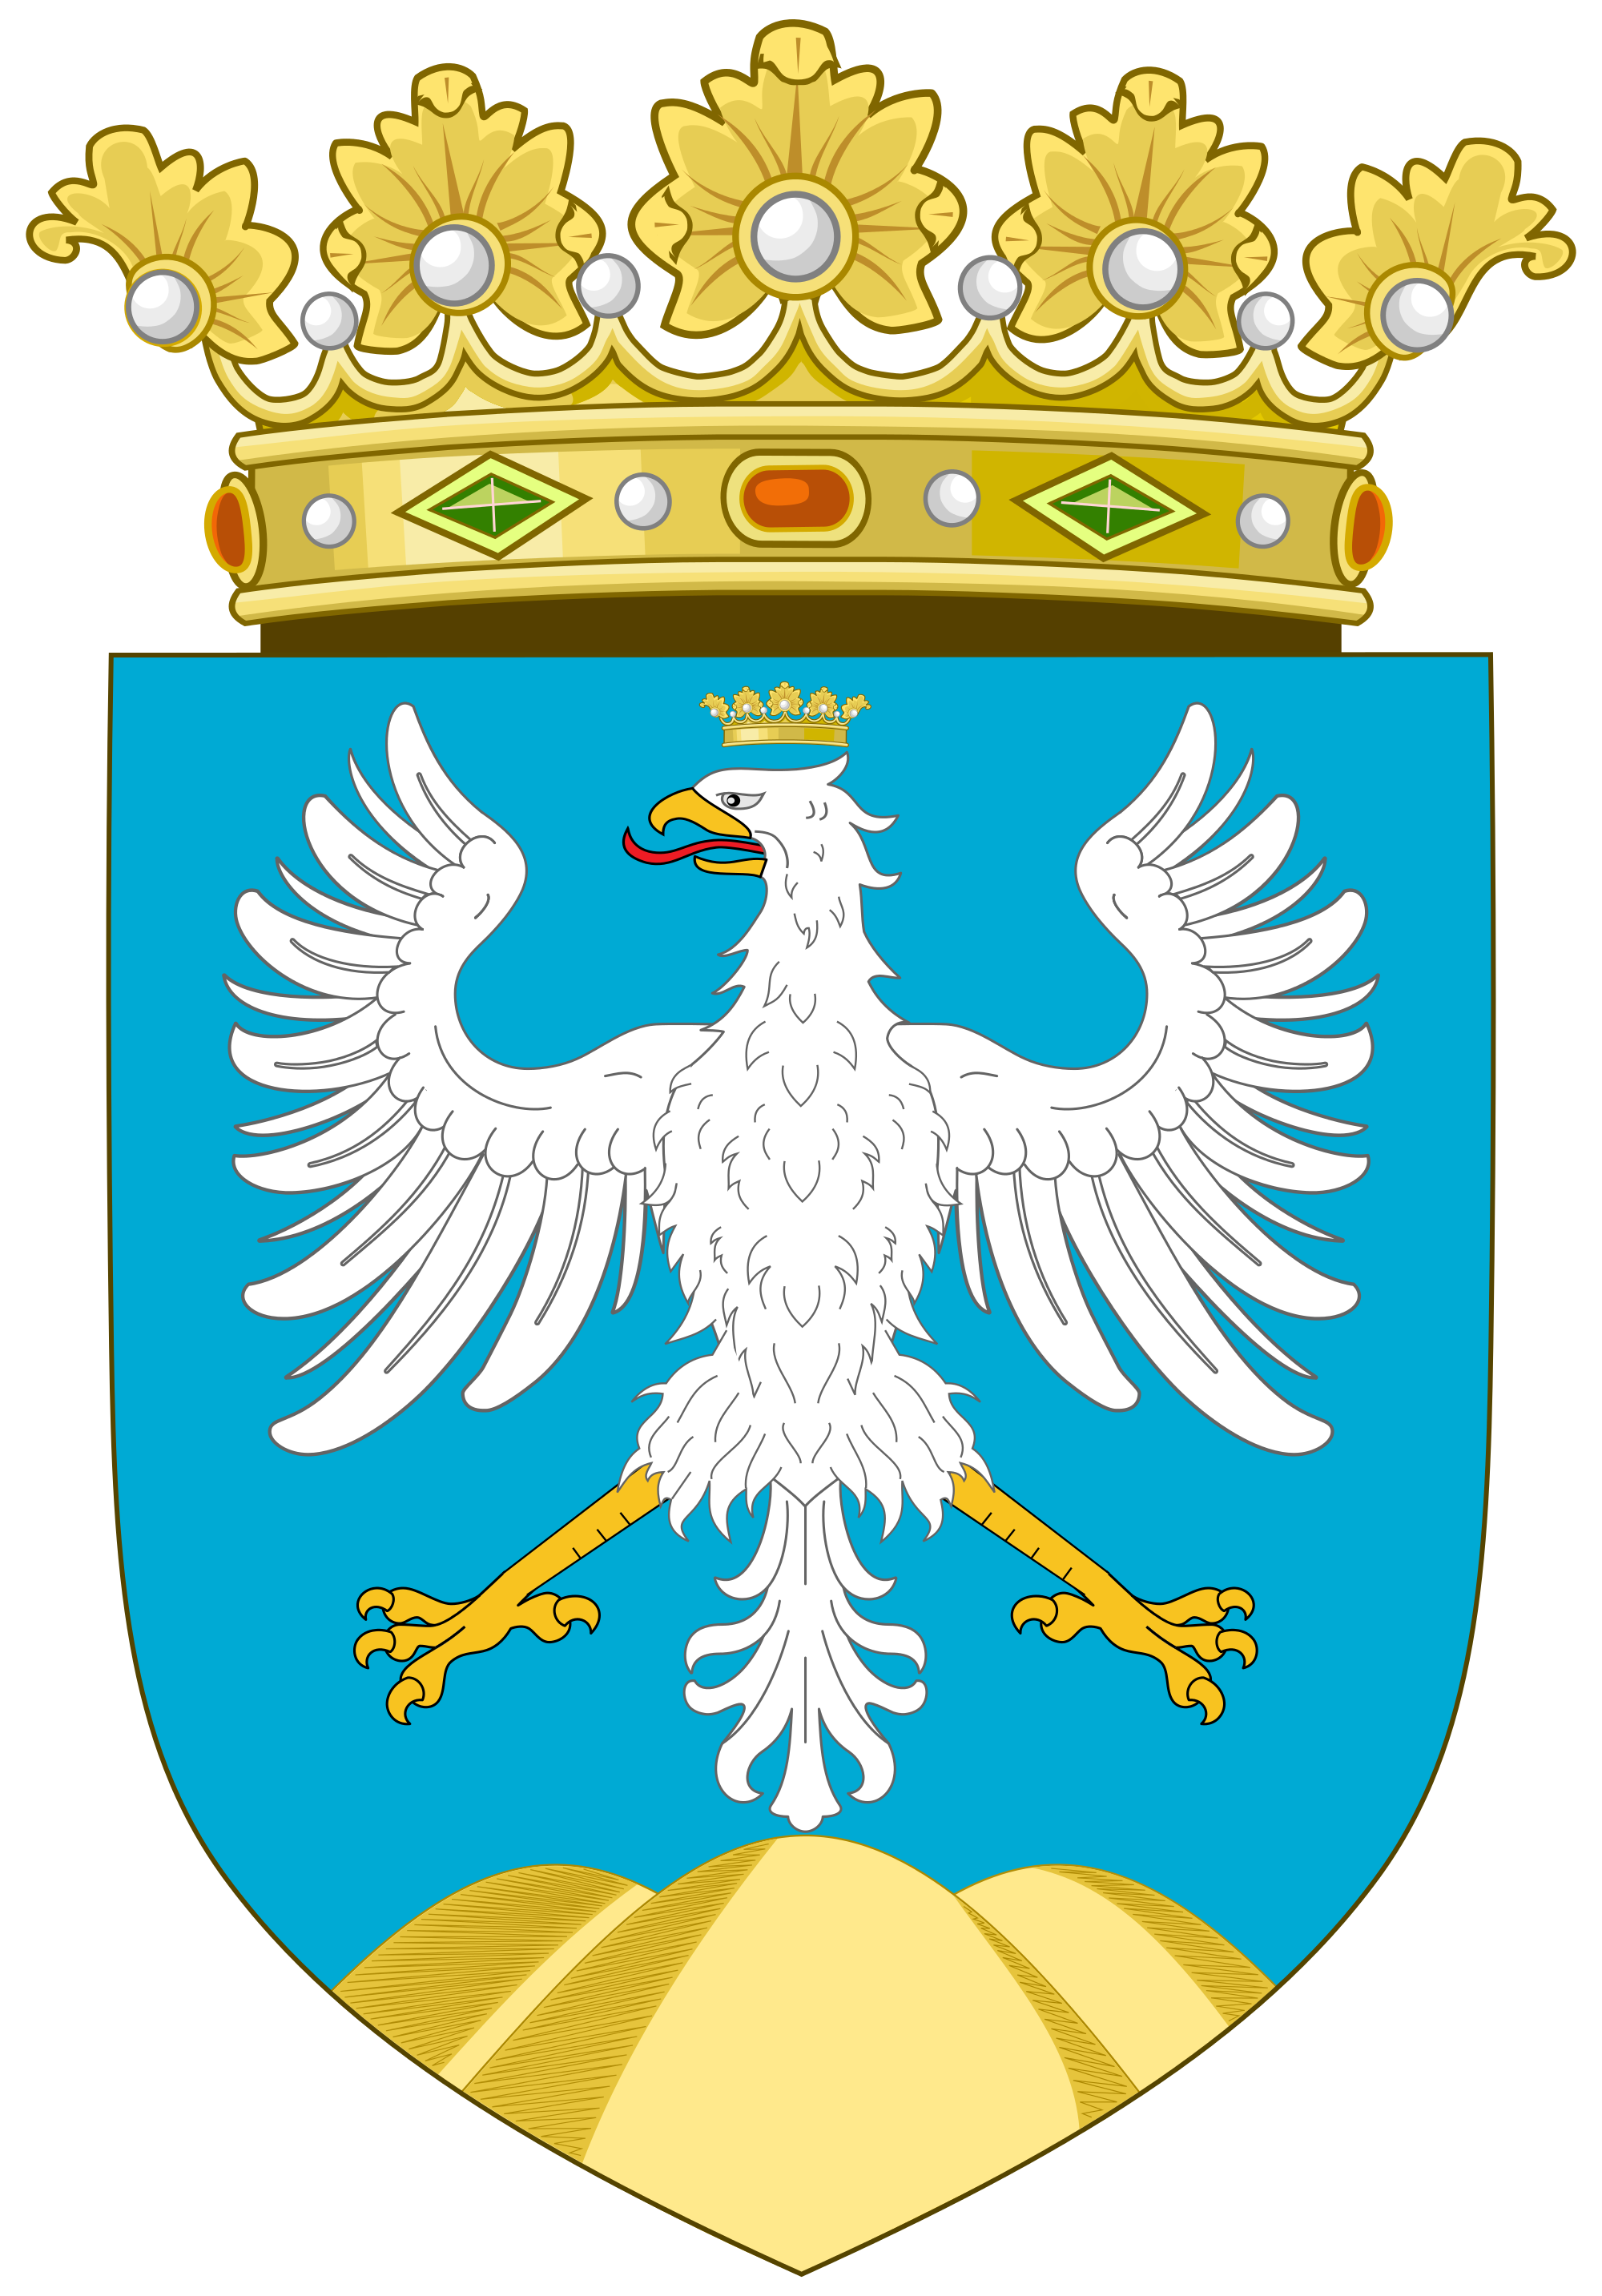 Wing clipart coat arm. File of arms abruzzo